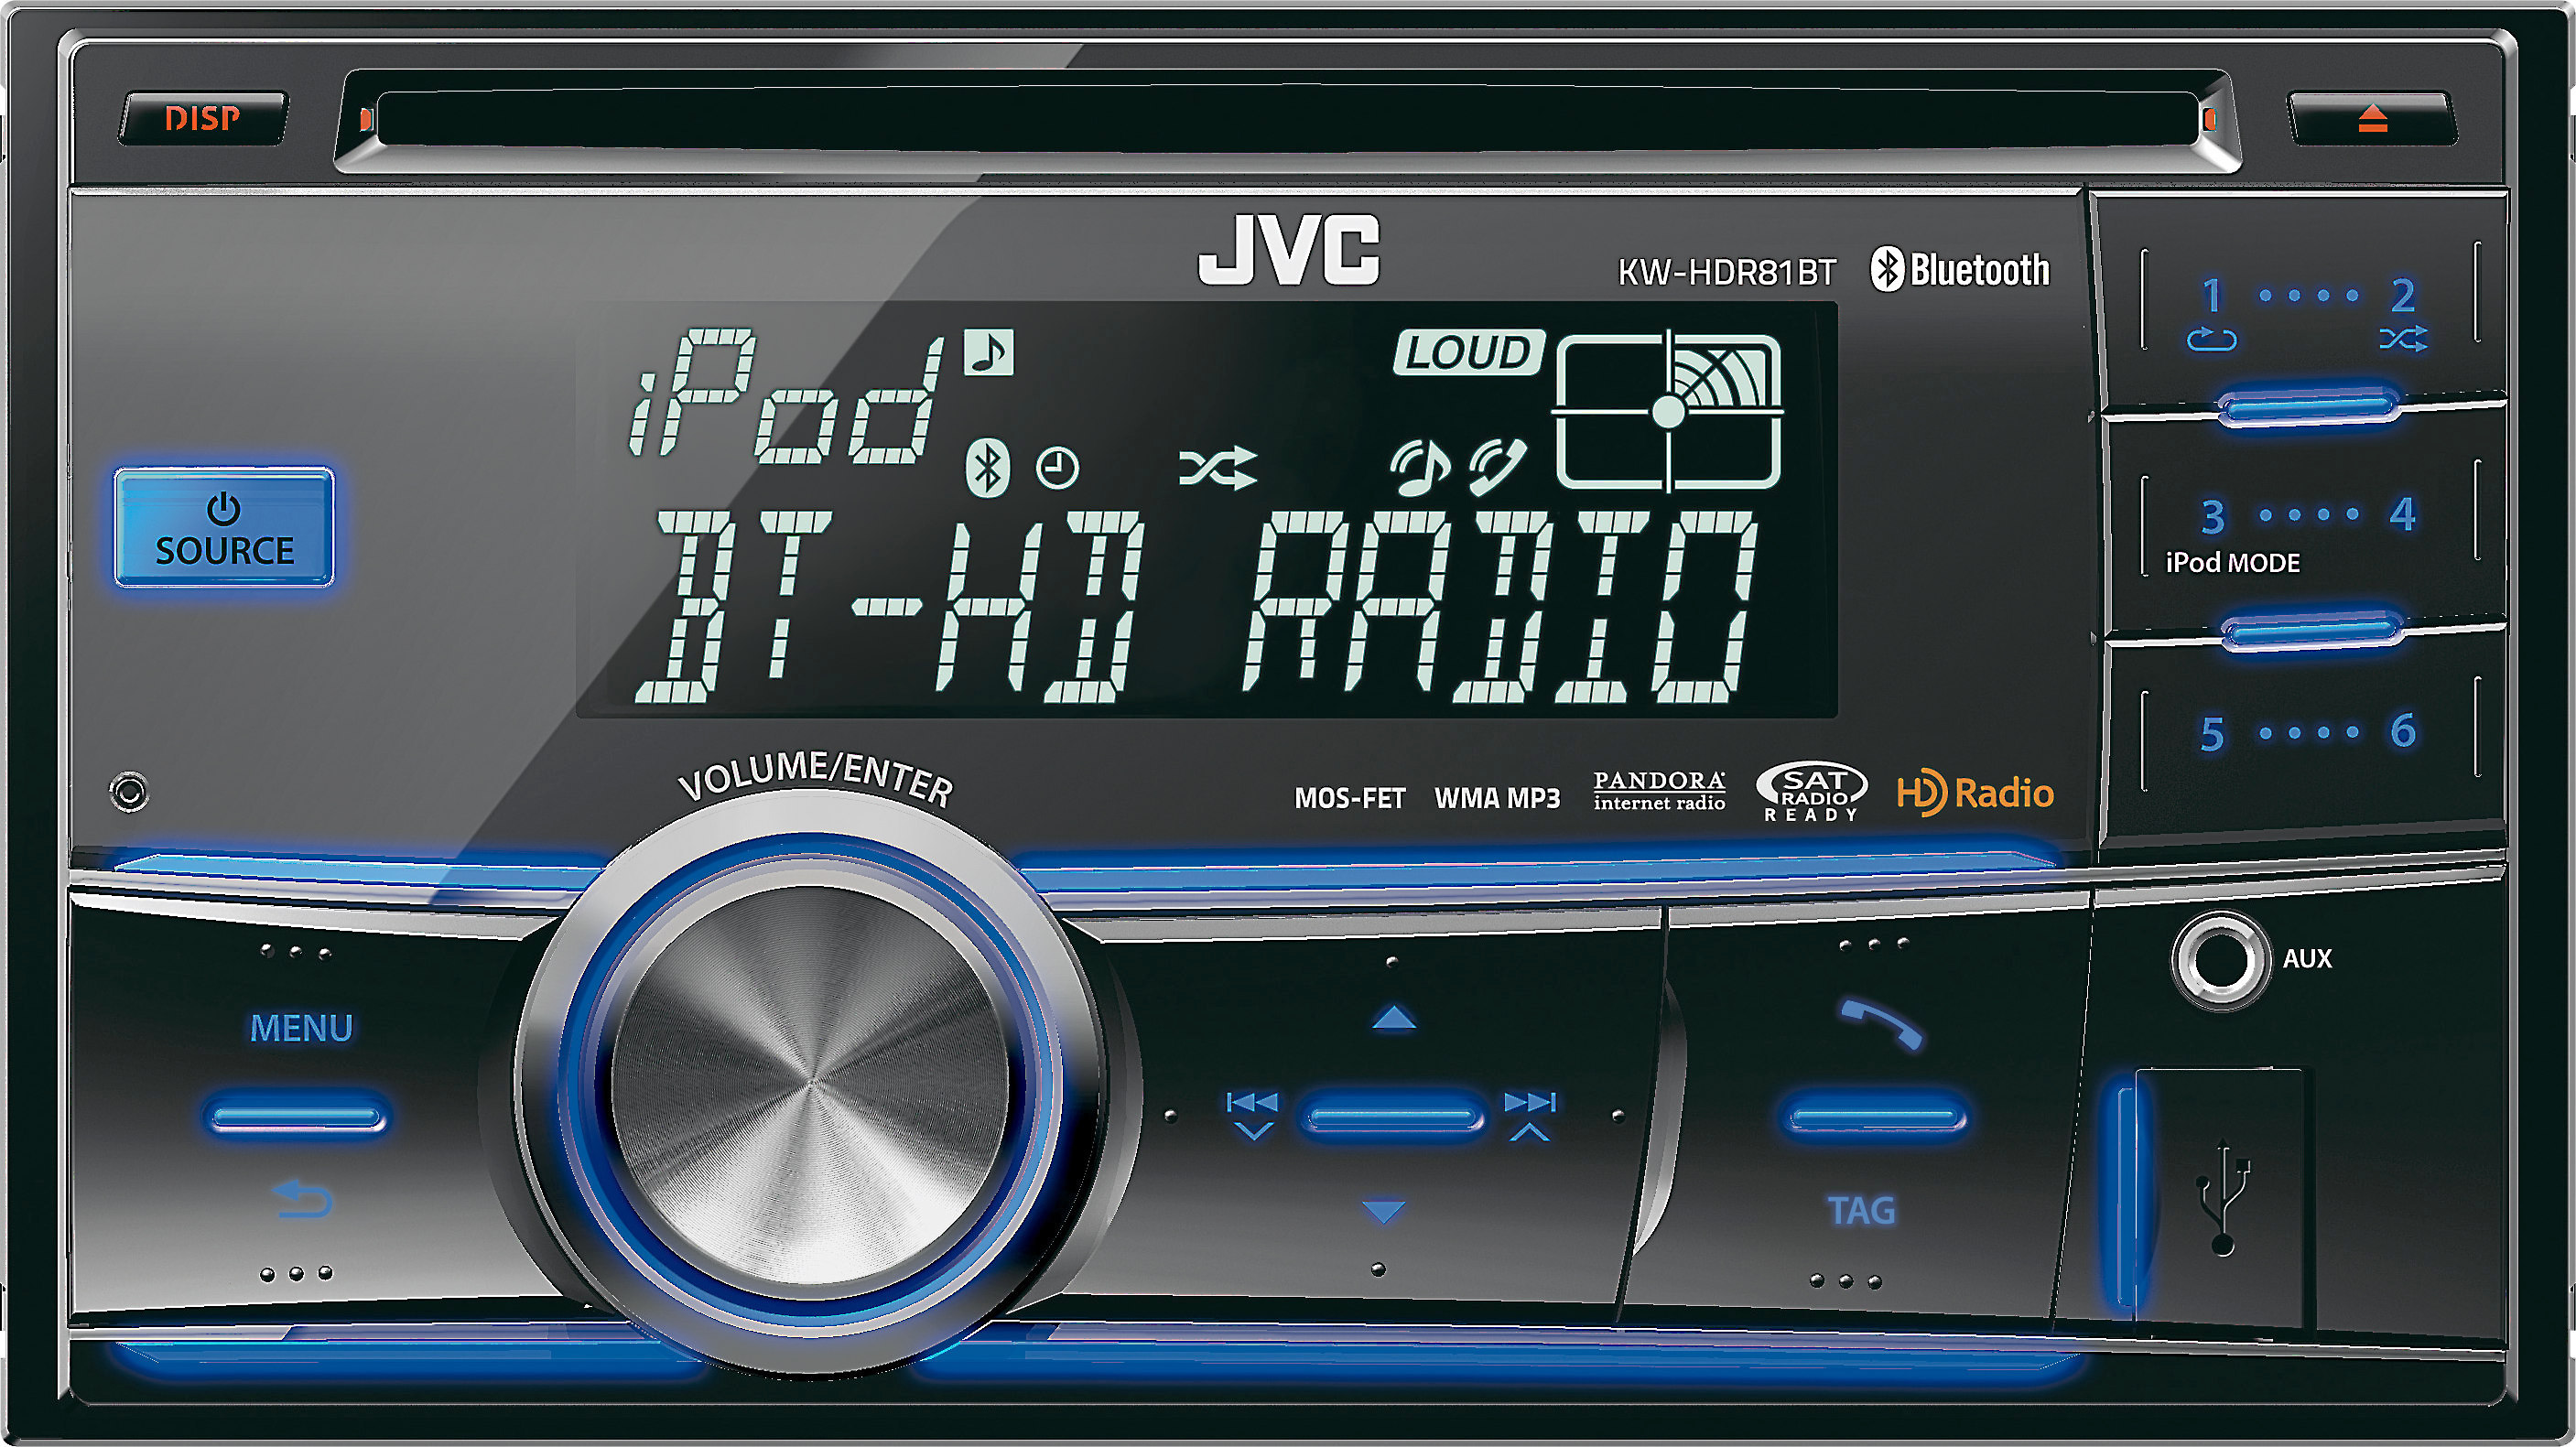 JVC KW-HDR81BT CD receiver at Crutchfield